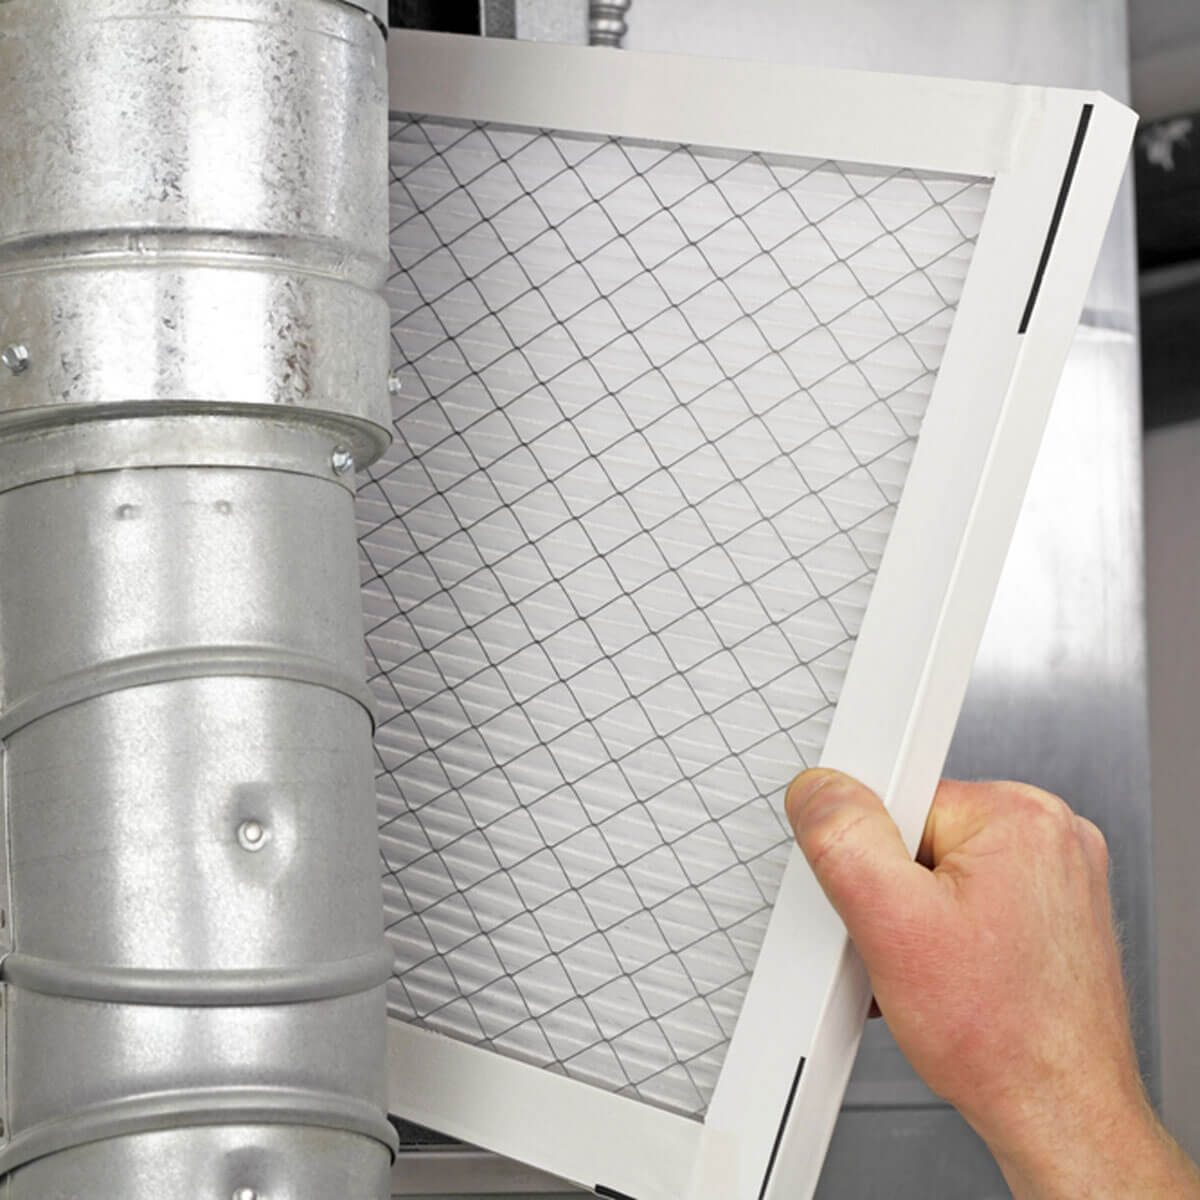 Change the Furnace Filter